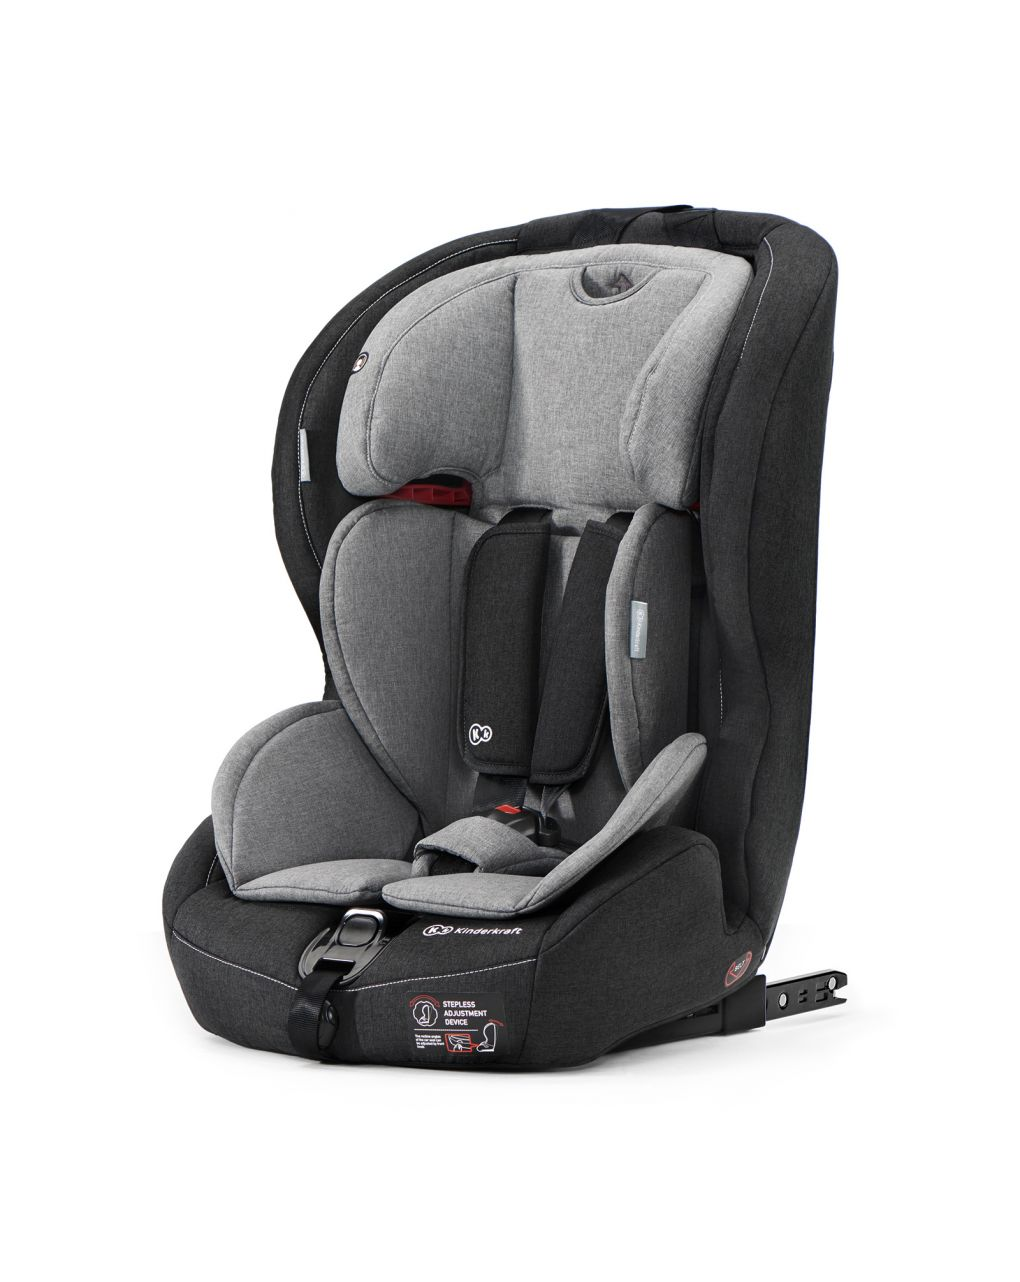 Seggiolino auto safety-fix black/gray - Kinderkraft